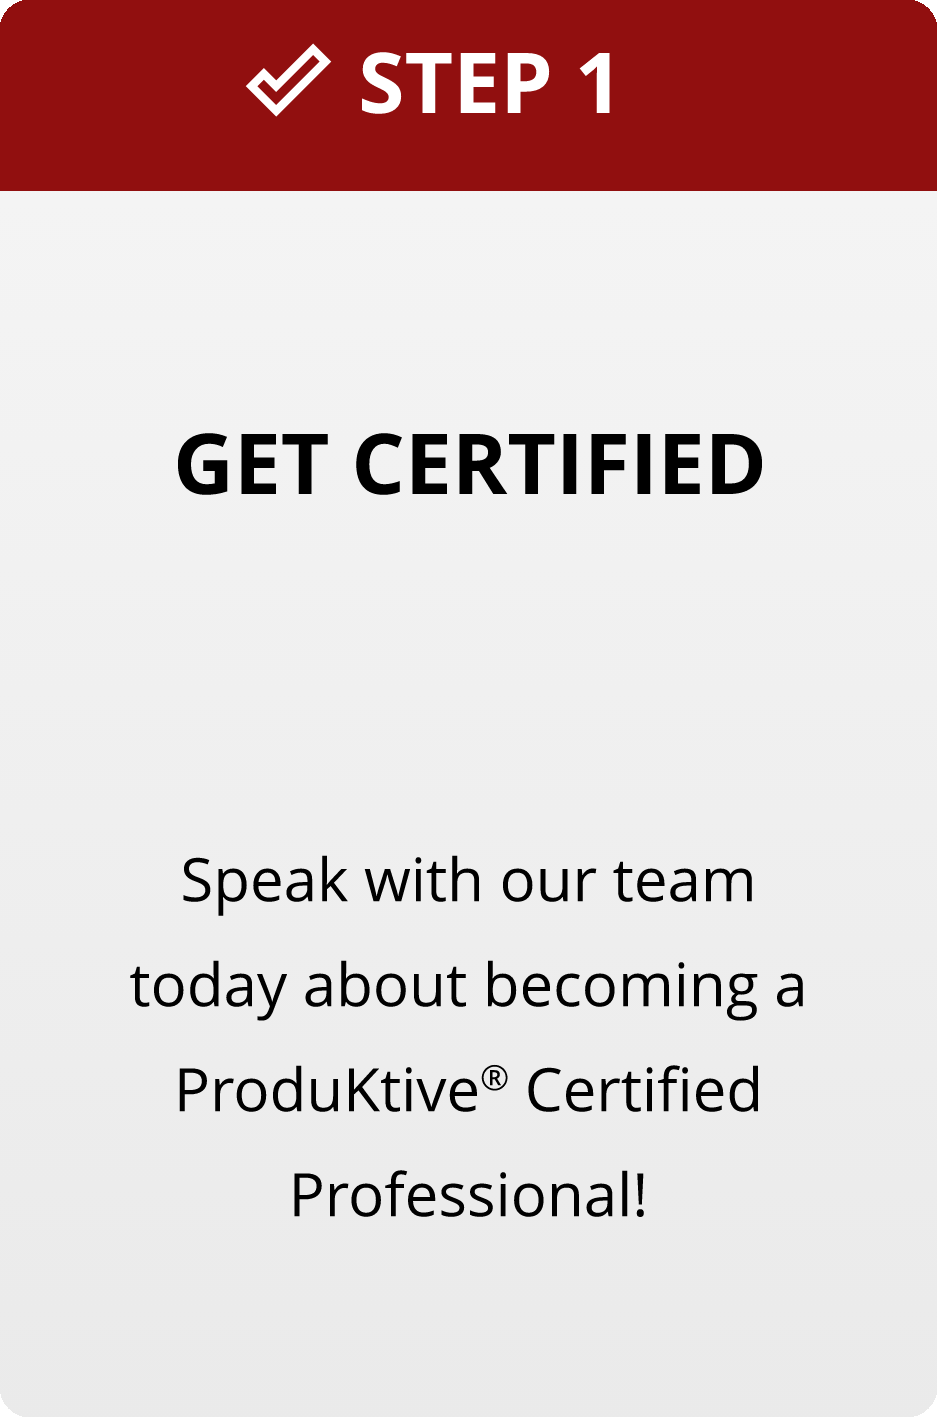 Step 1: Get Certified. Speak with our team today about becoming a certified ProduKtive® Certified Professional.